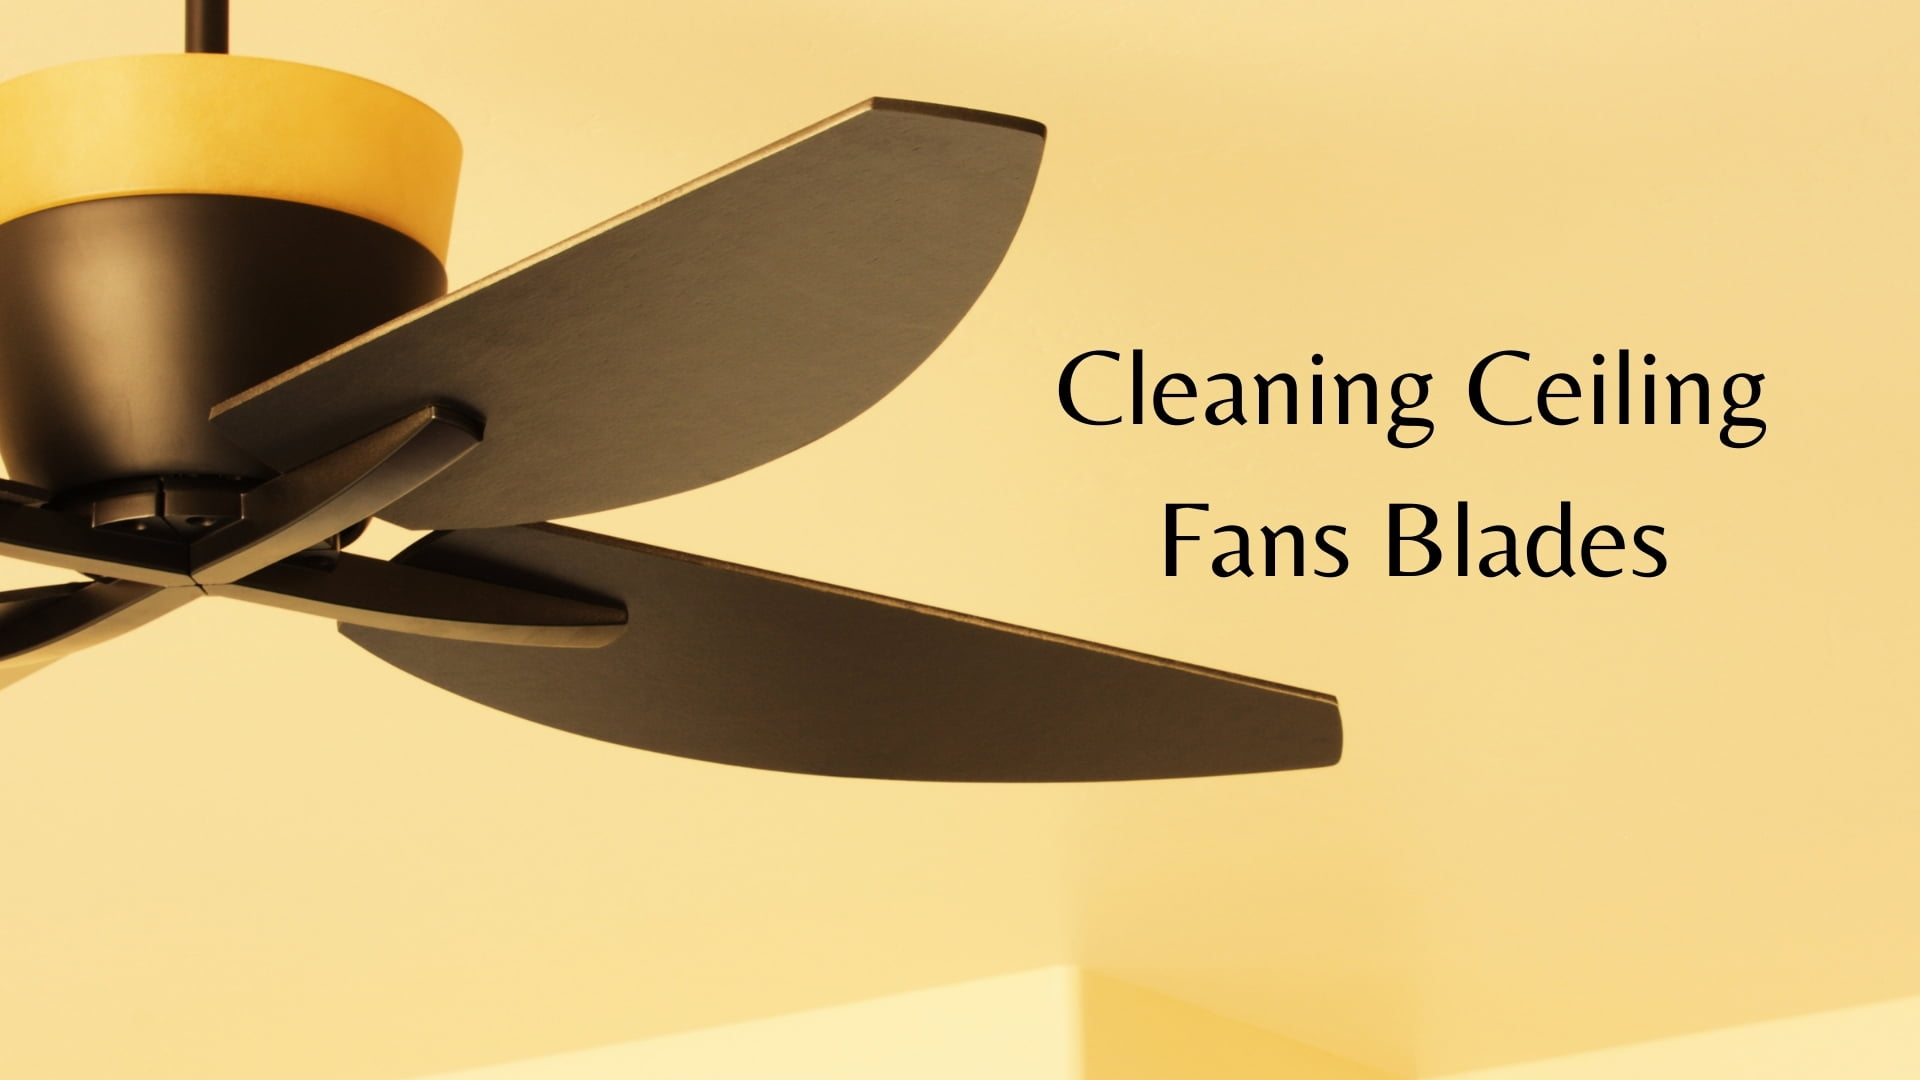 how to clean ceiling fans blades